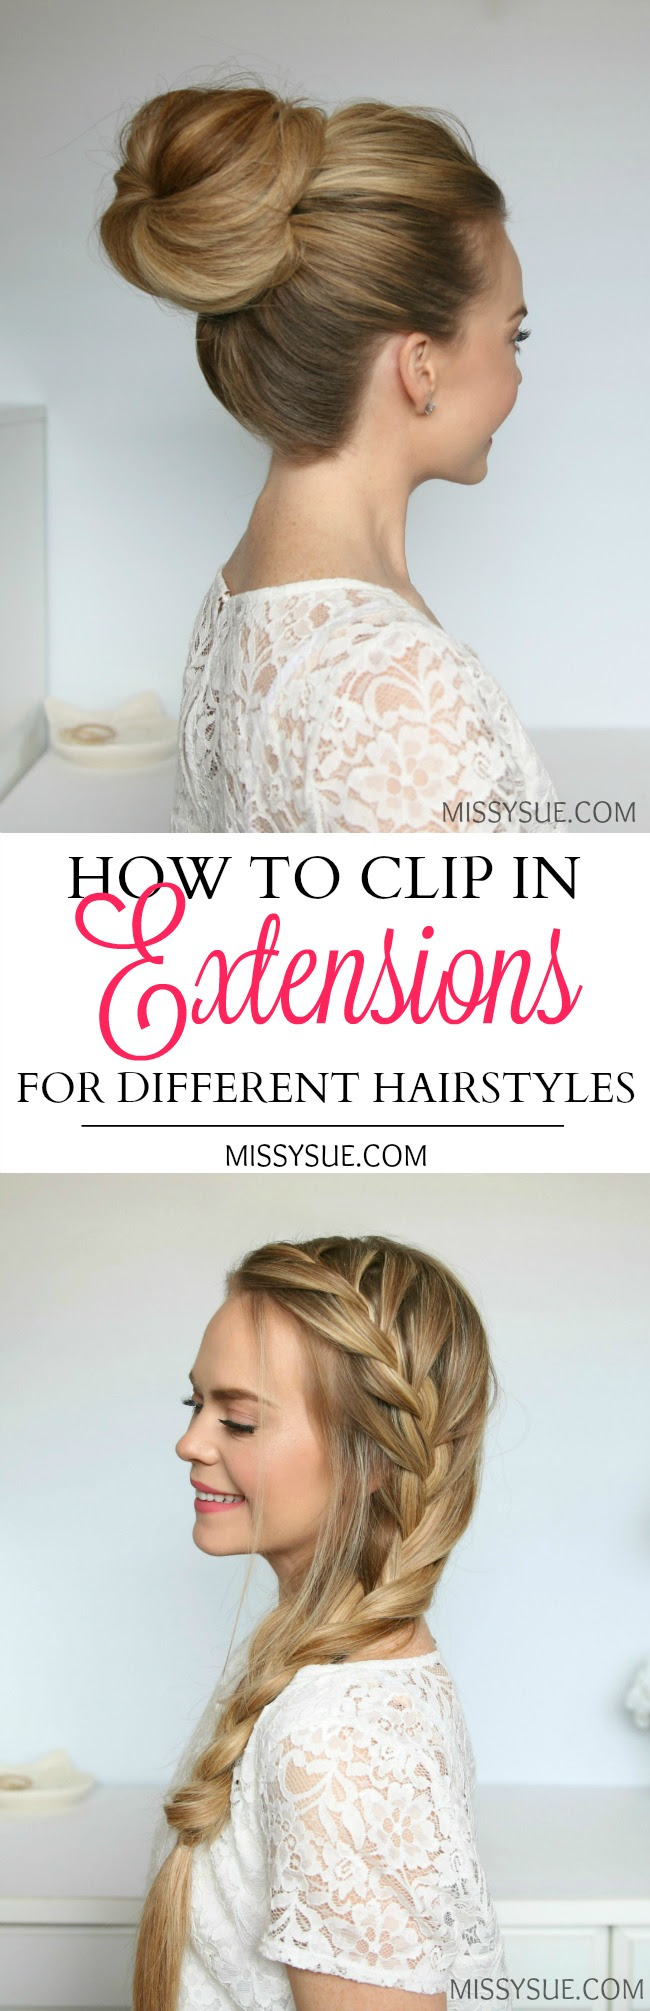 How To Clip In Extensions For Different Hairstyles MISSY SUE